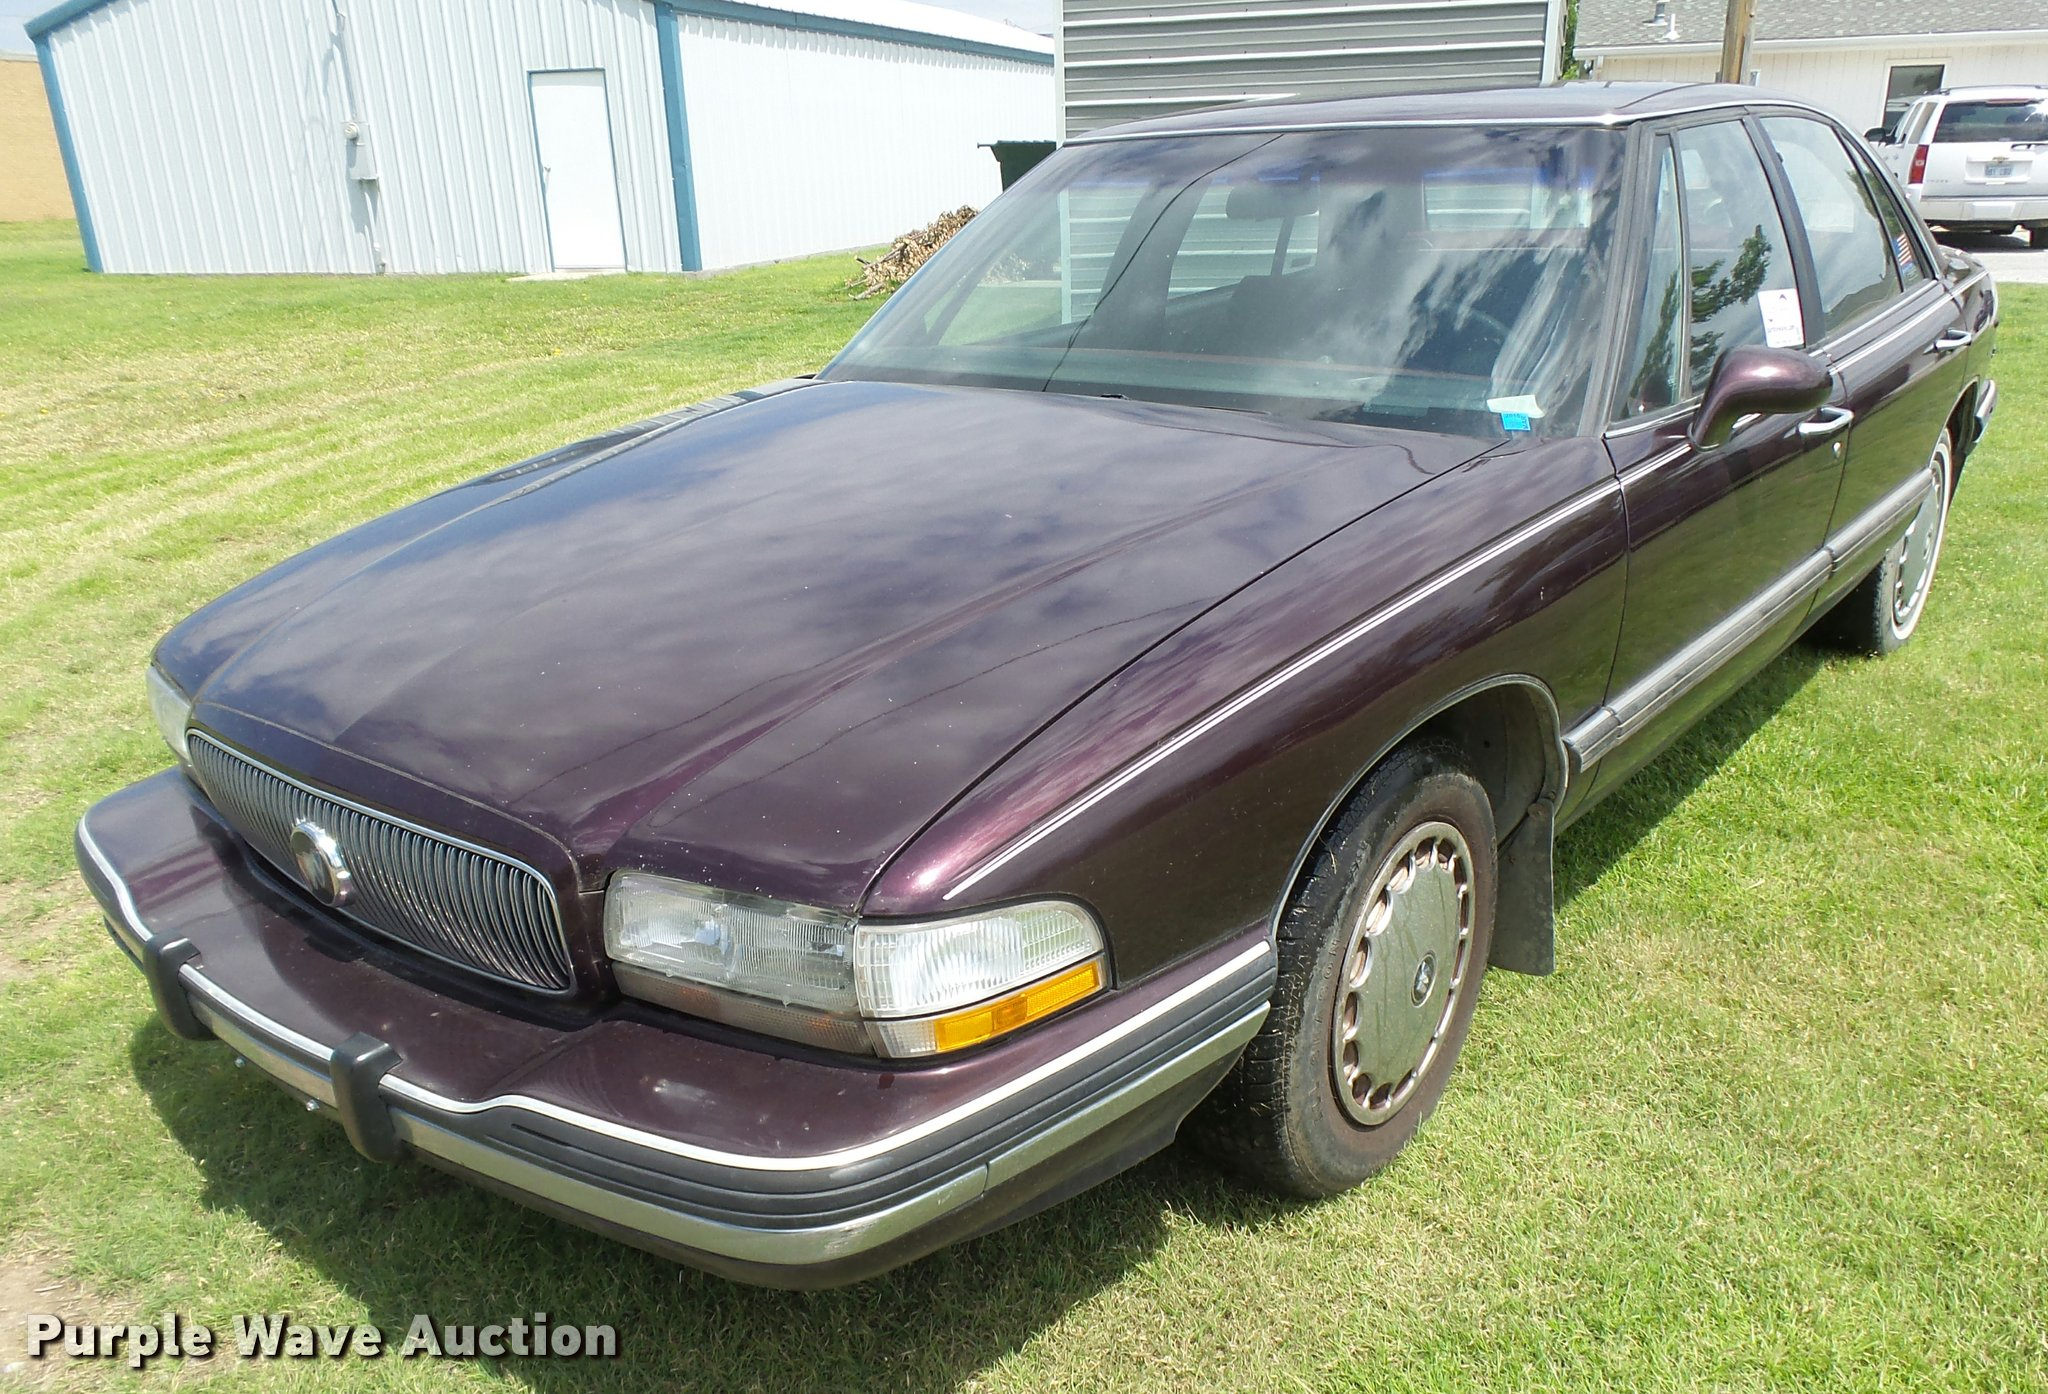 1996 Buick Lesabre >> 1996 Buick Lesabre Item Db2620 Sold July 5 Vehicles And